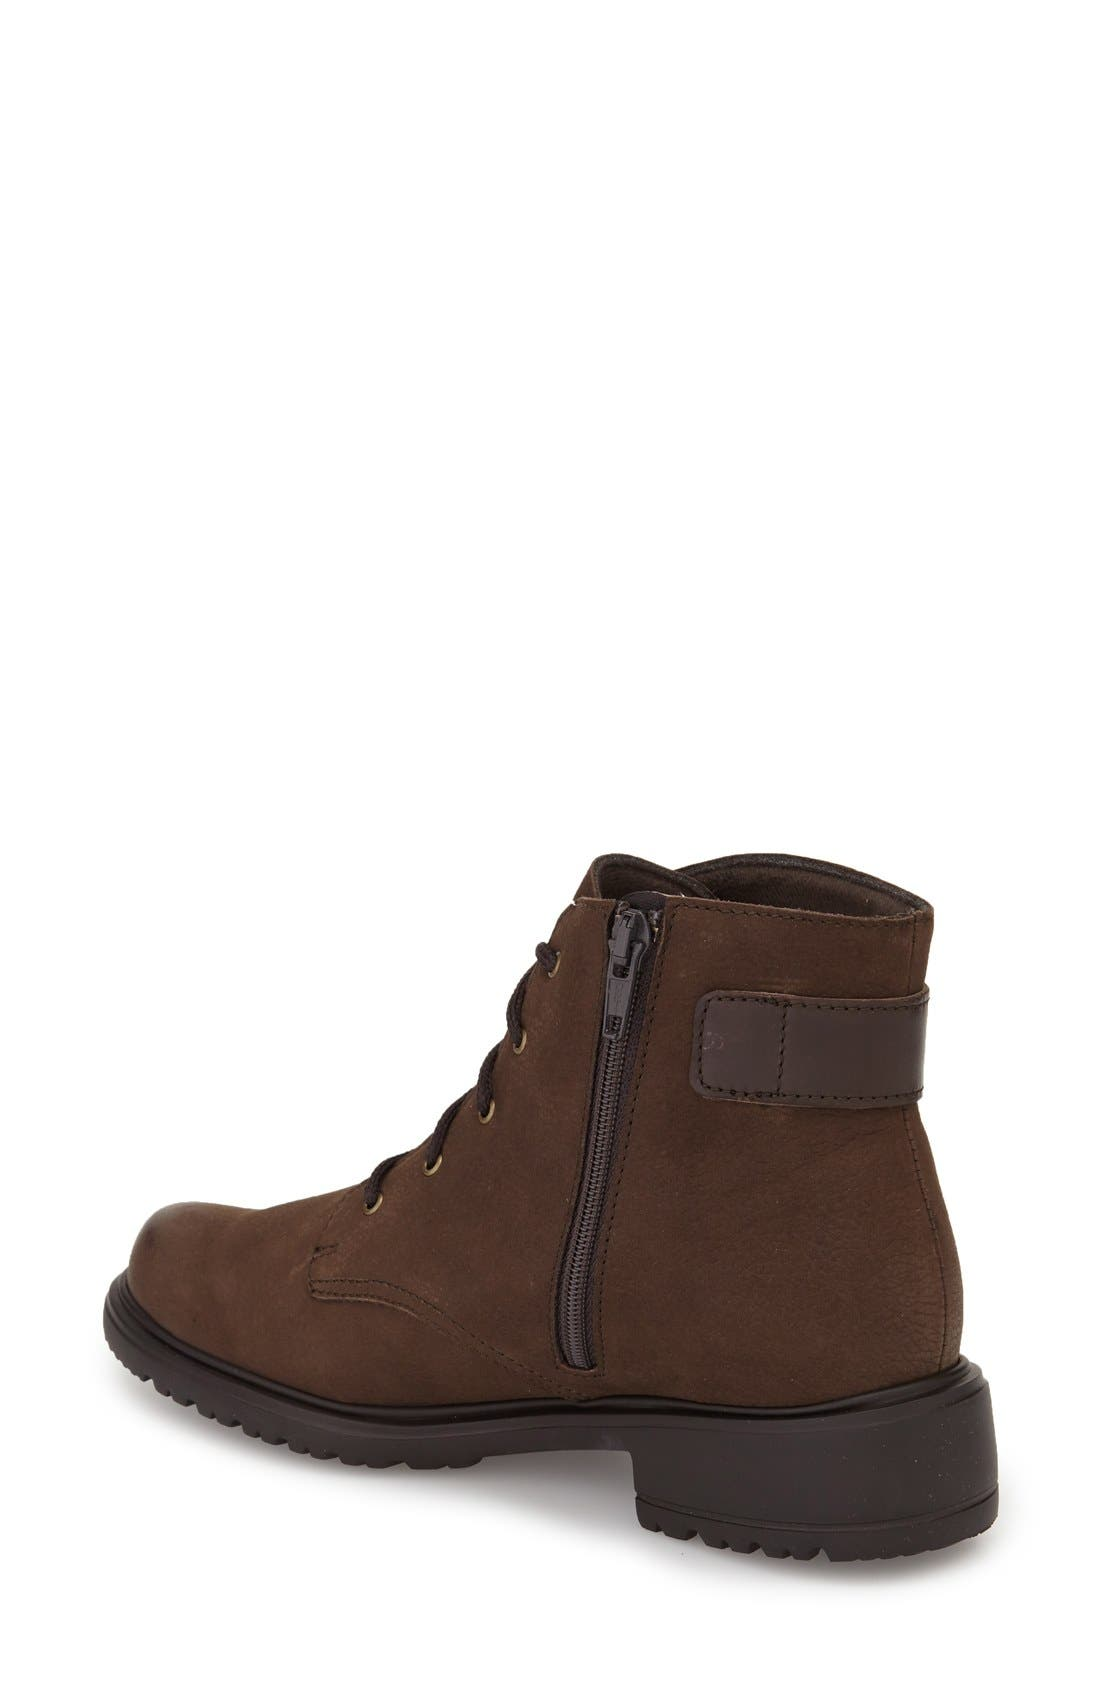 Bradley Water Resistant Boot,                             Alternate thumbnail 2, color,                             Brown Tumbled Nubuck Leather